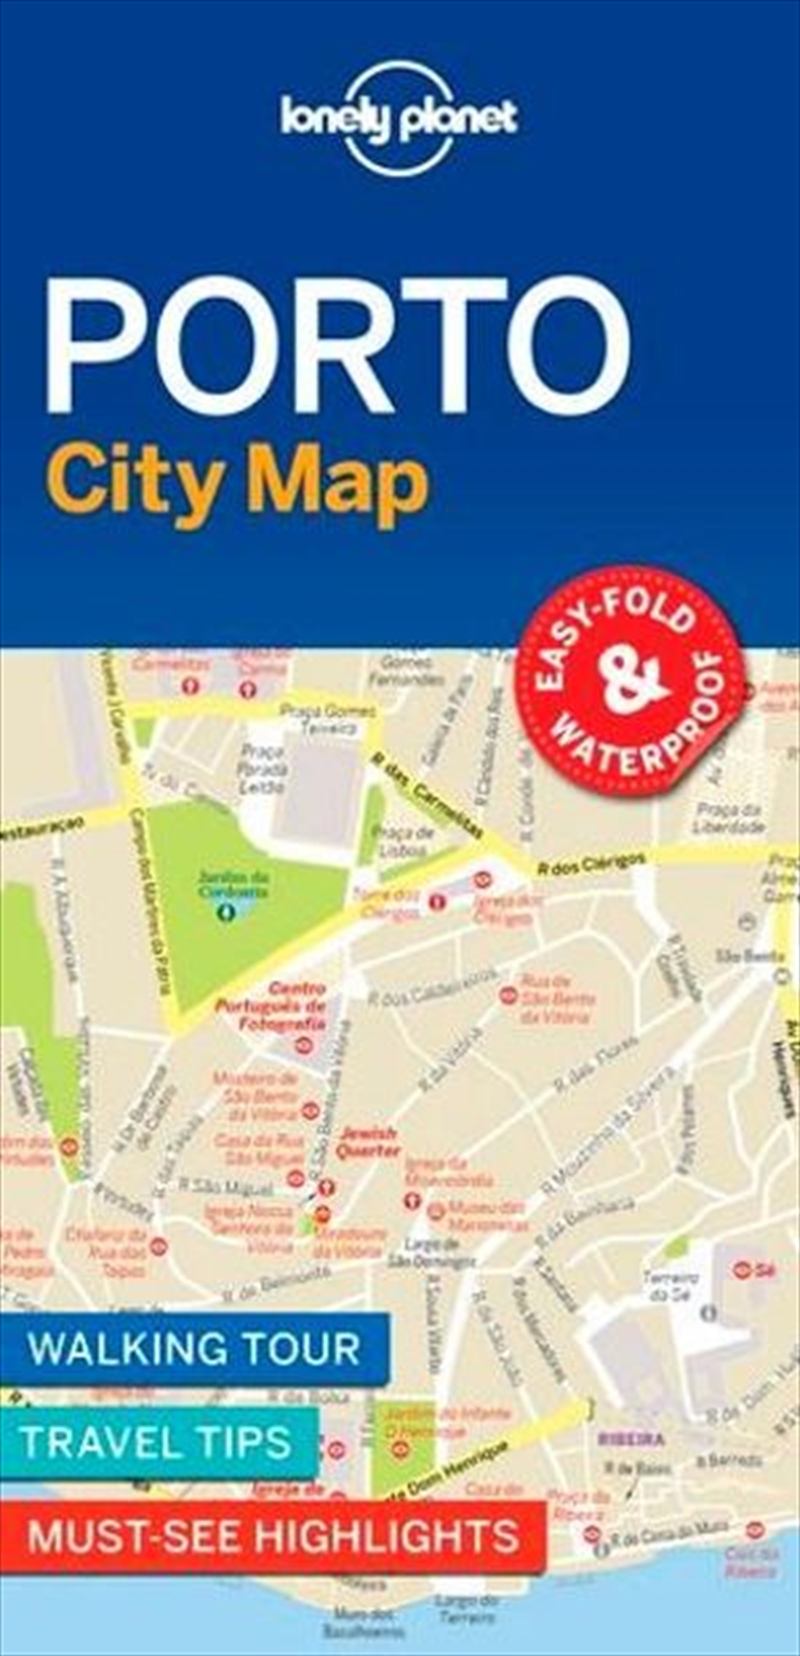 Lonely Planet - Porto City Map | Sheet Map